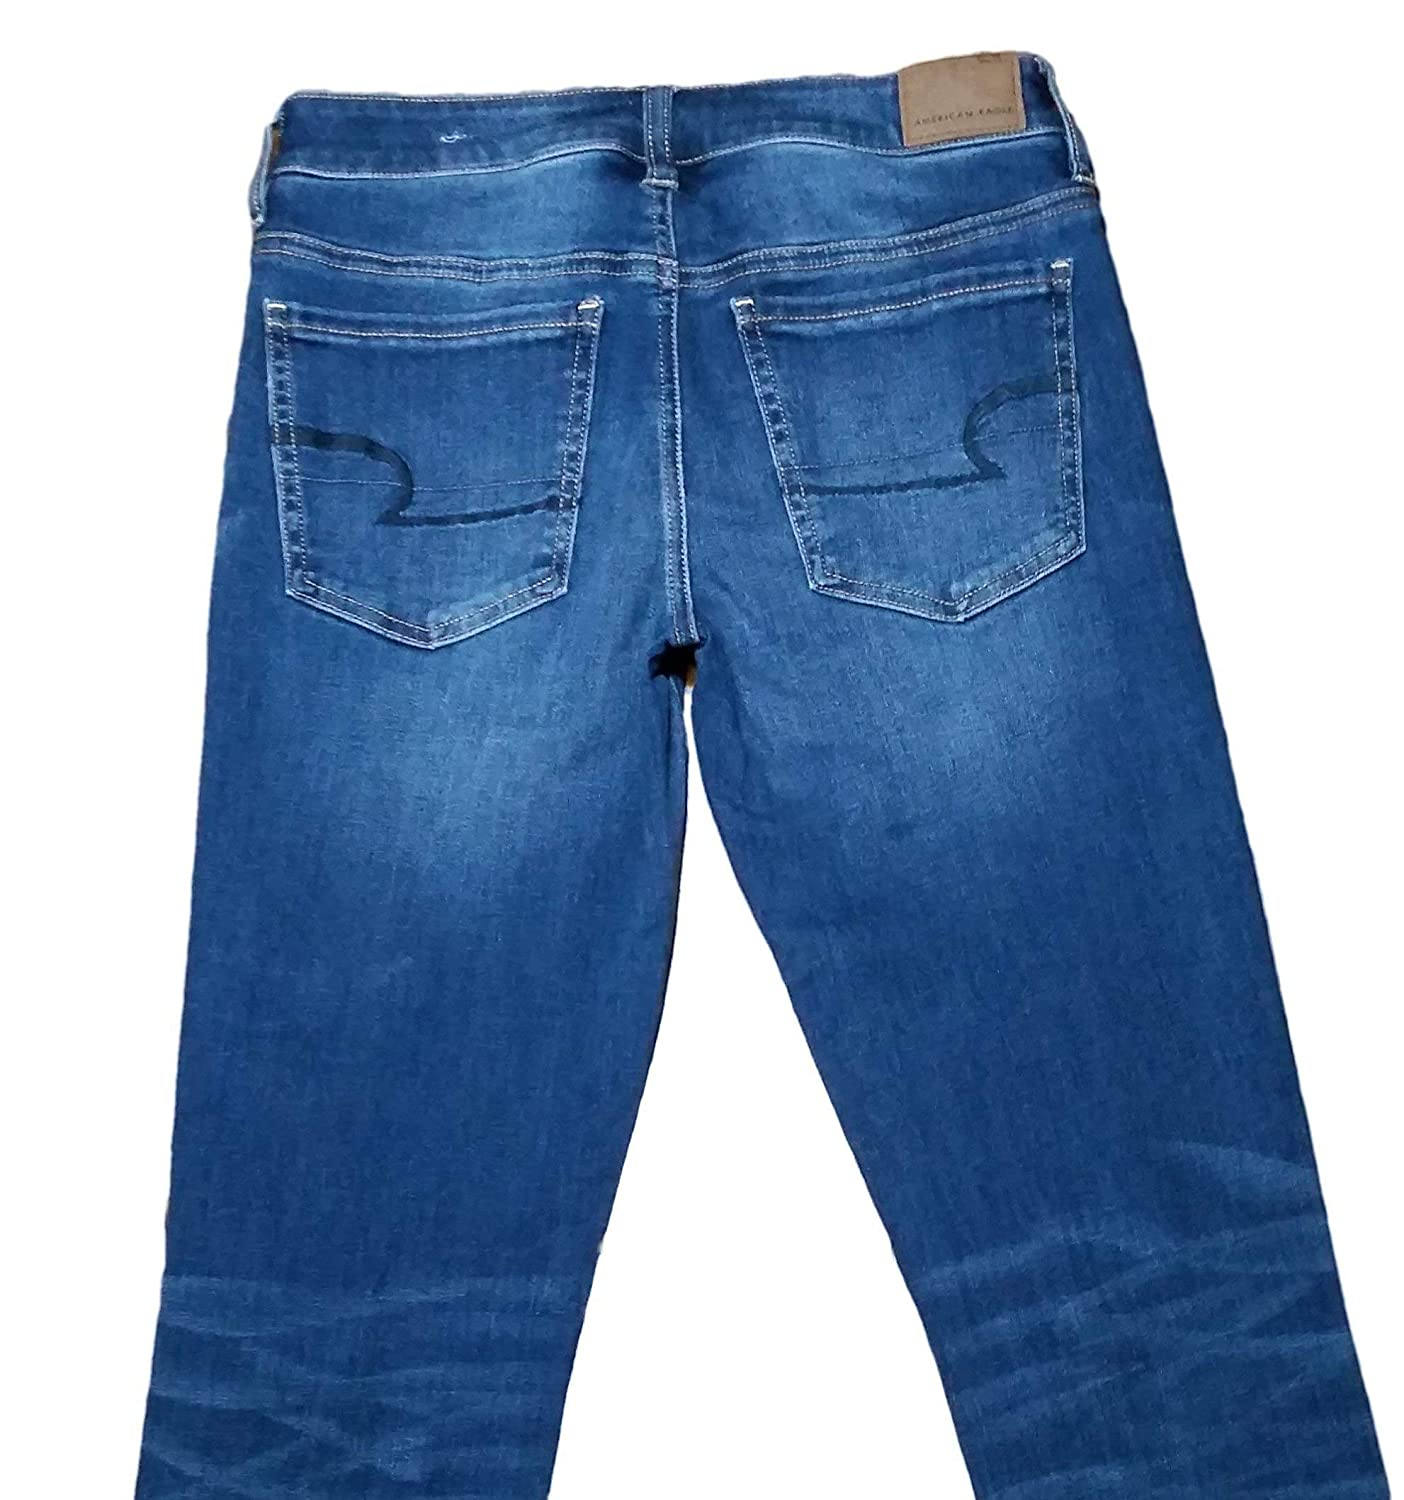 57949a40dc5ee American Eagle Jegging Crop Low Rise Ripped Regular Inseam 26 Inches (20)  Blue at Amazon Women's Jeans store